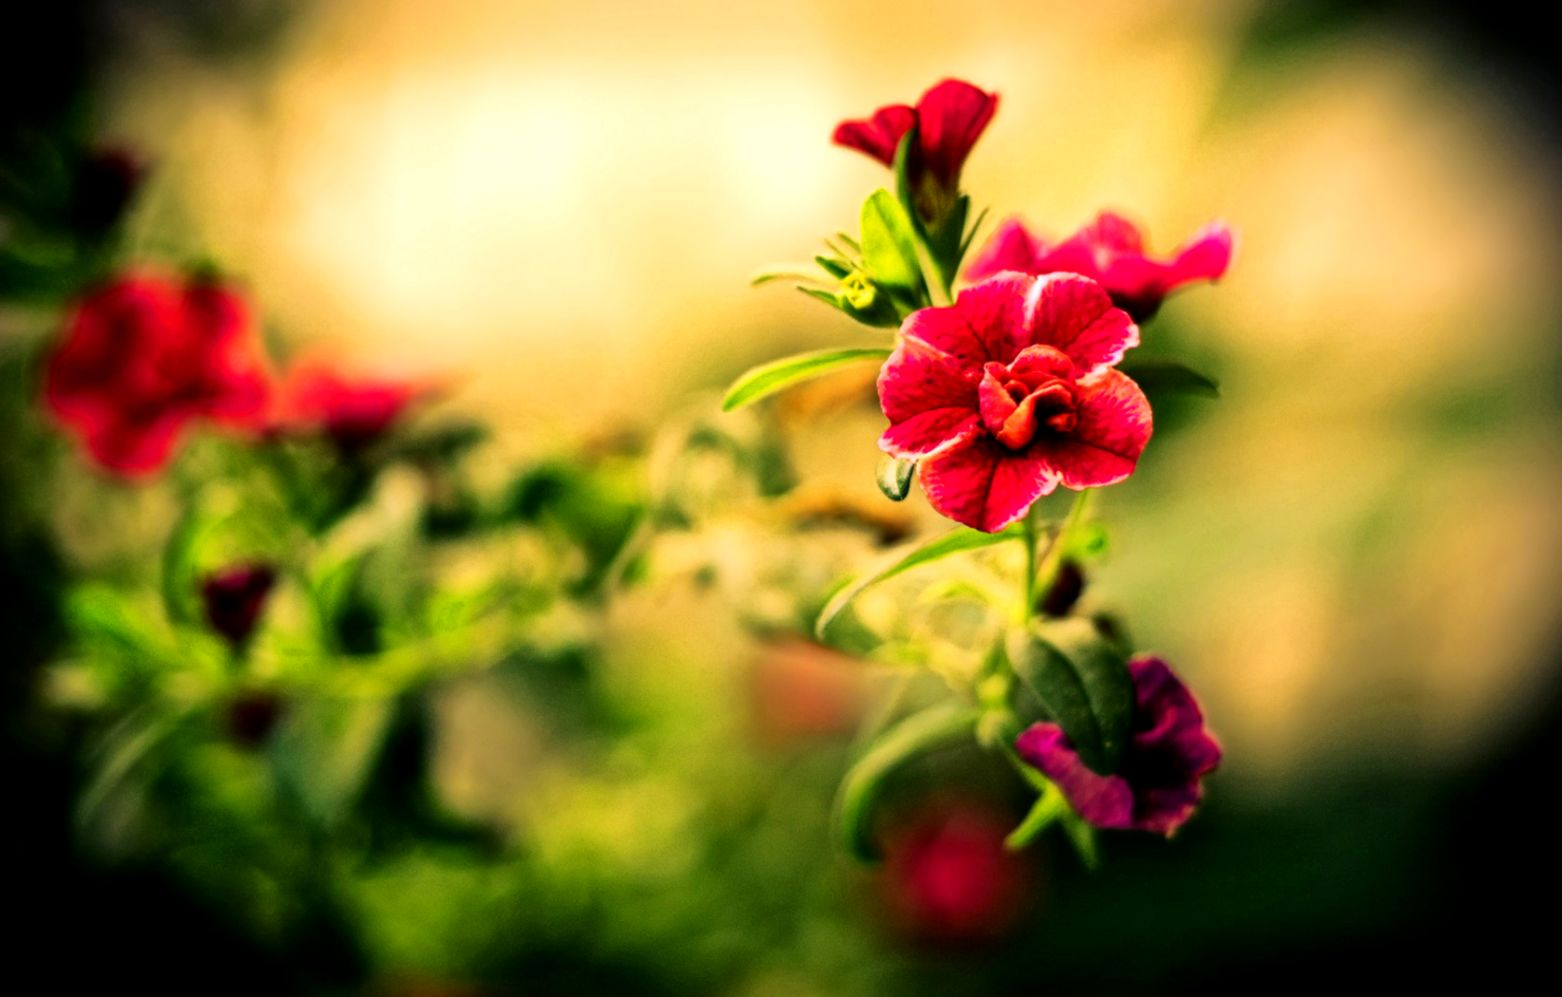 Beautiful Flower Wallpaper Hd